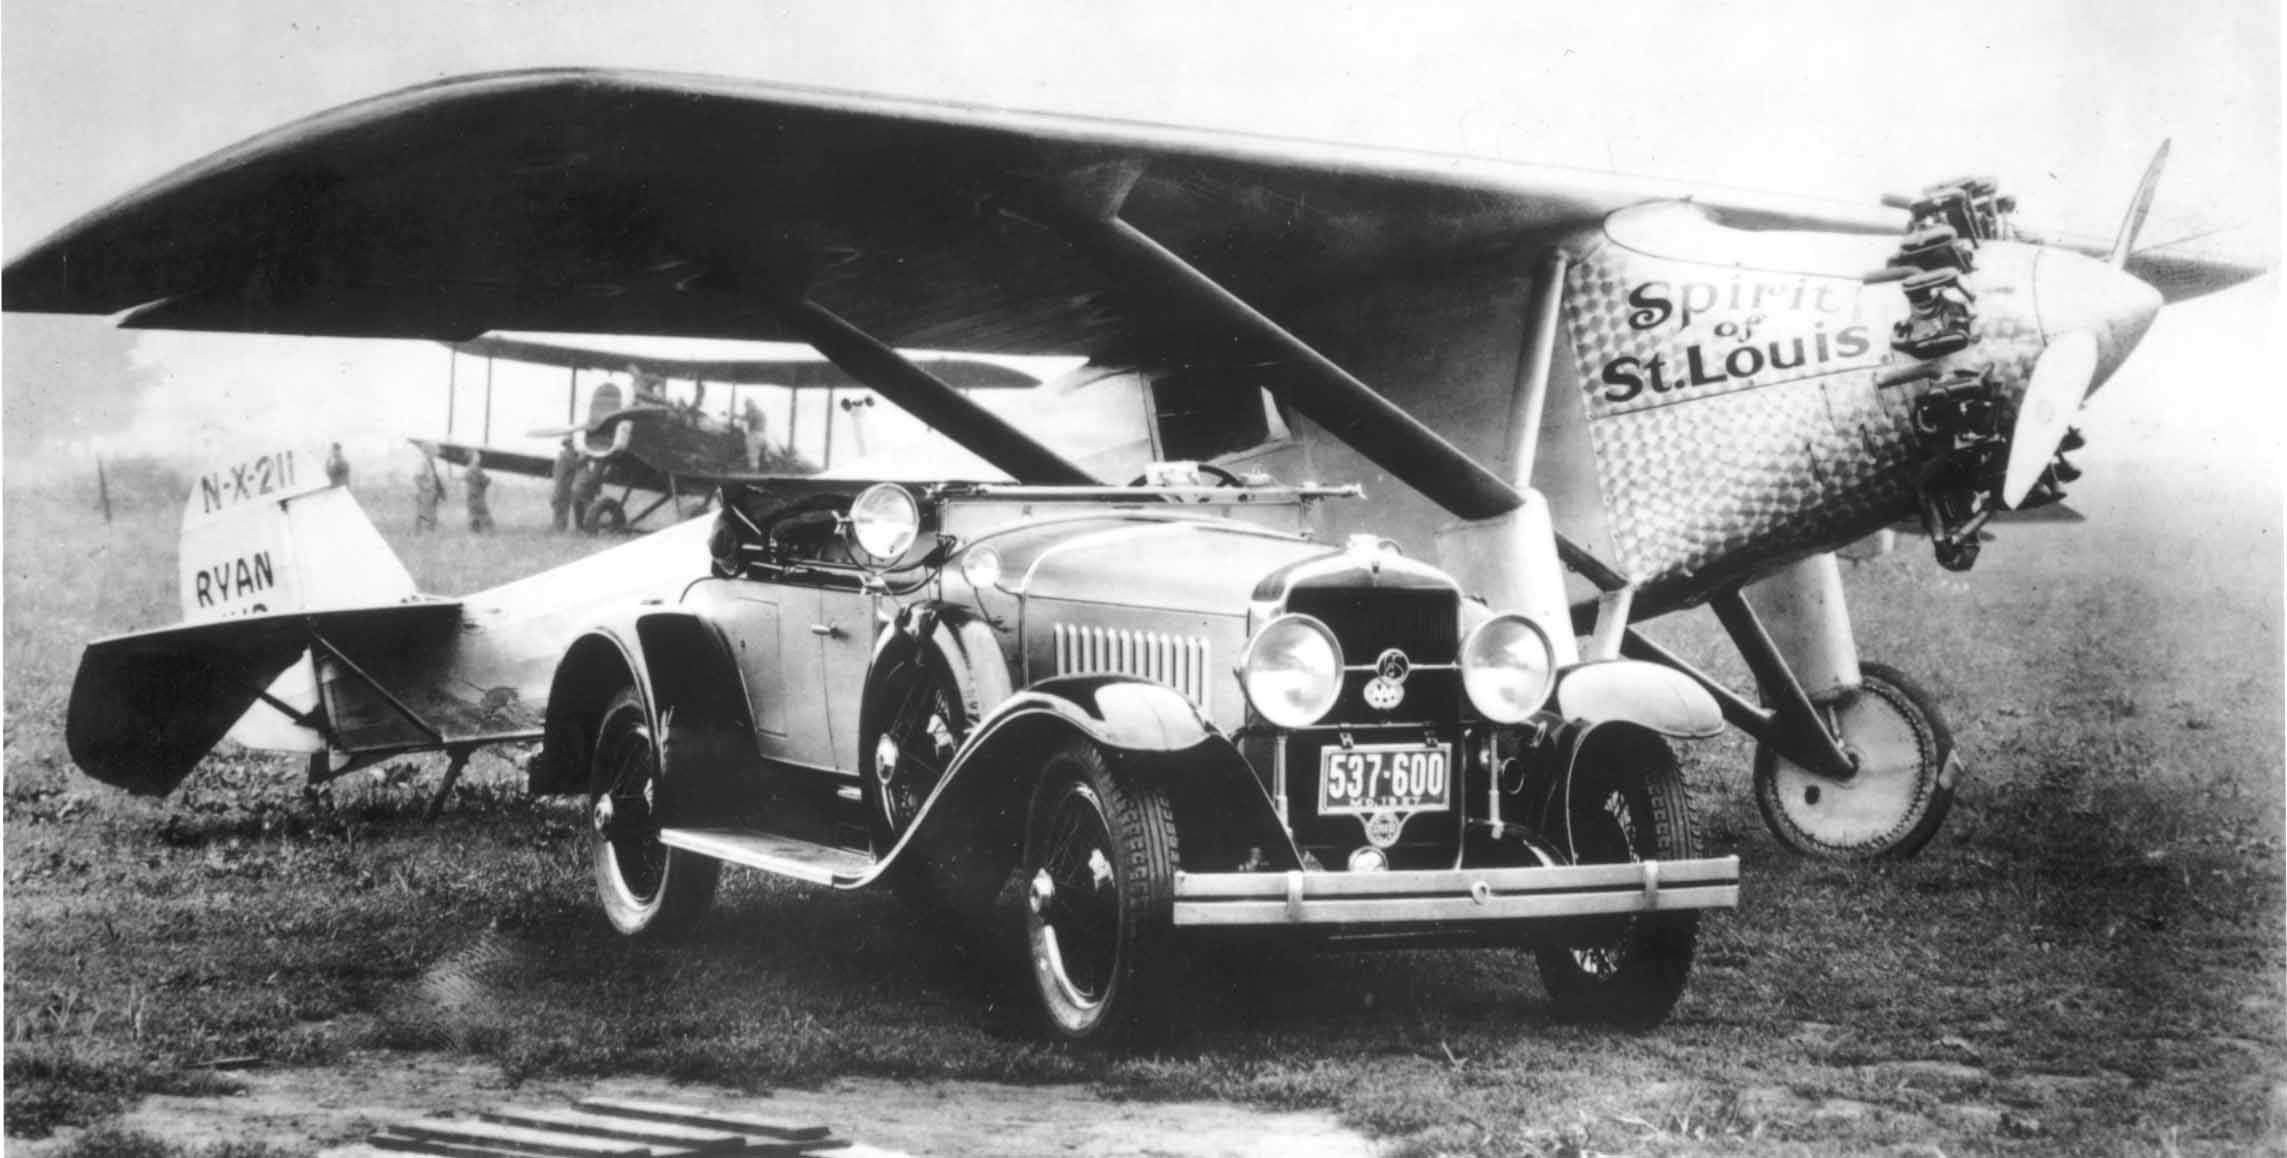 The Spirit of St. Louis and a 1927 LaSalle roadster in which the manager of Lambert Field picked up Lindbergh upon his arrival in St. Louis on August 15, 1927.